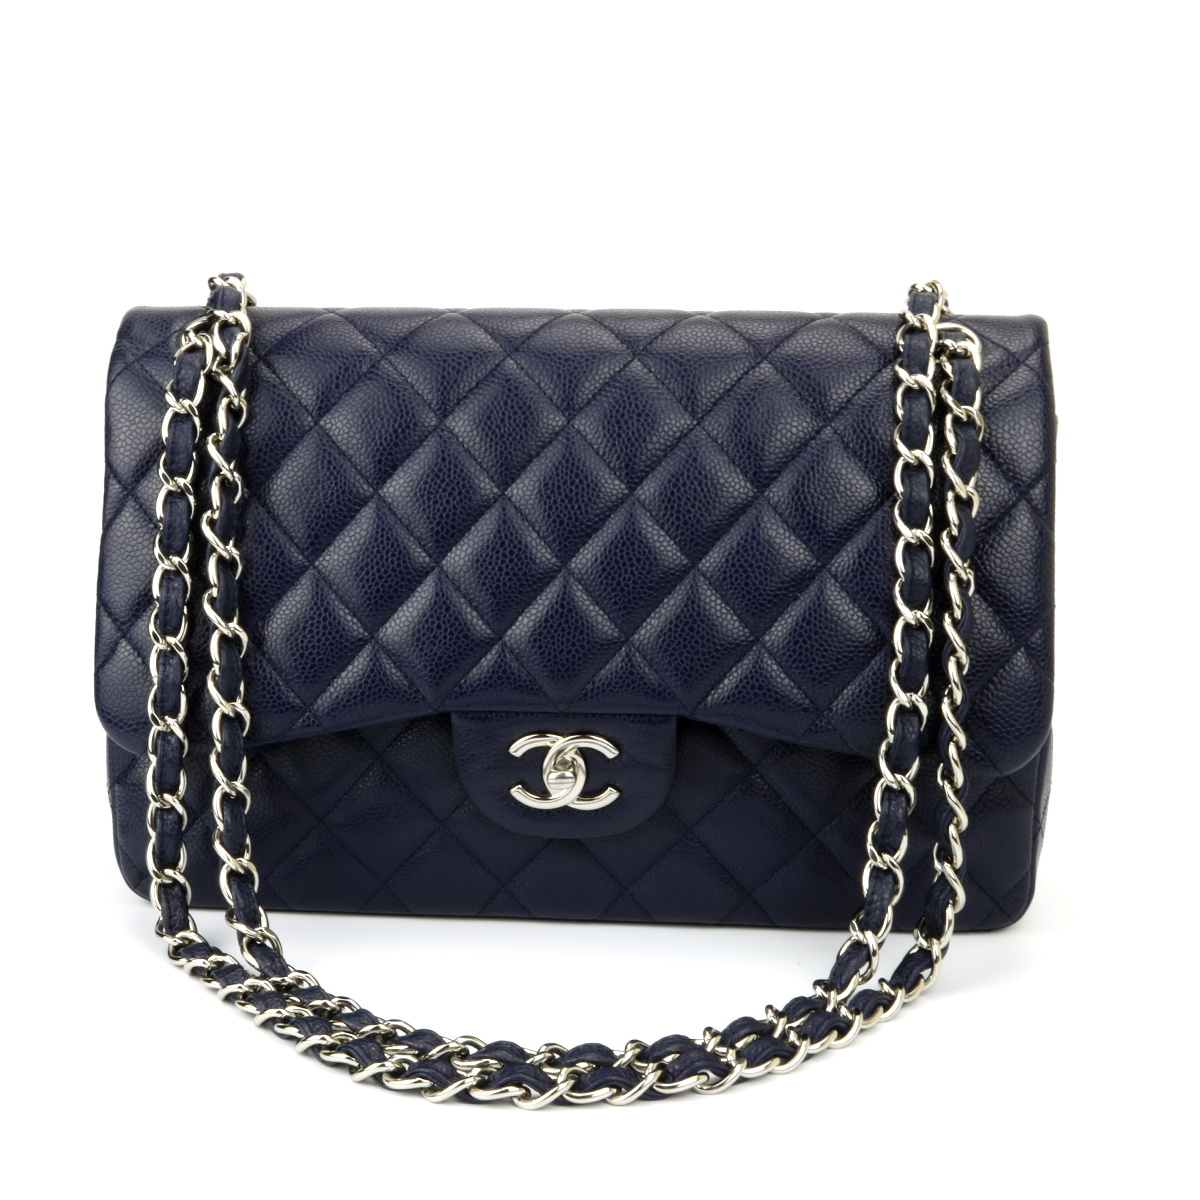 581d00f952f4 CHANEL Classic Double Flap Jumbo Navy Caviar Silver Hardware 2014 ...